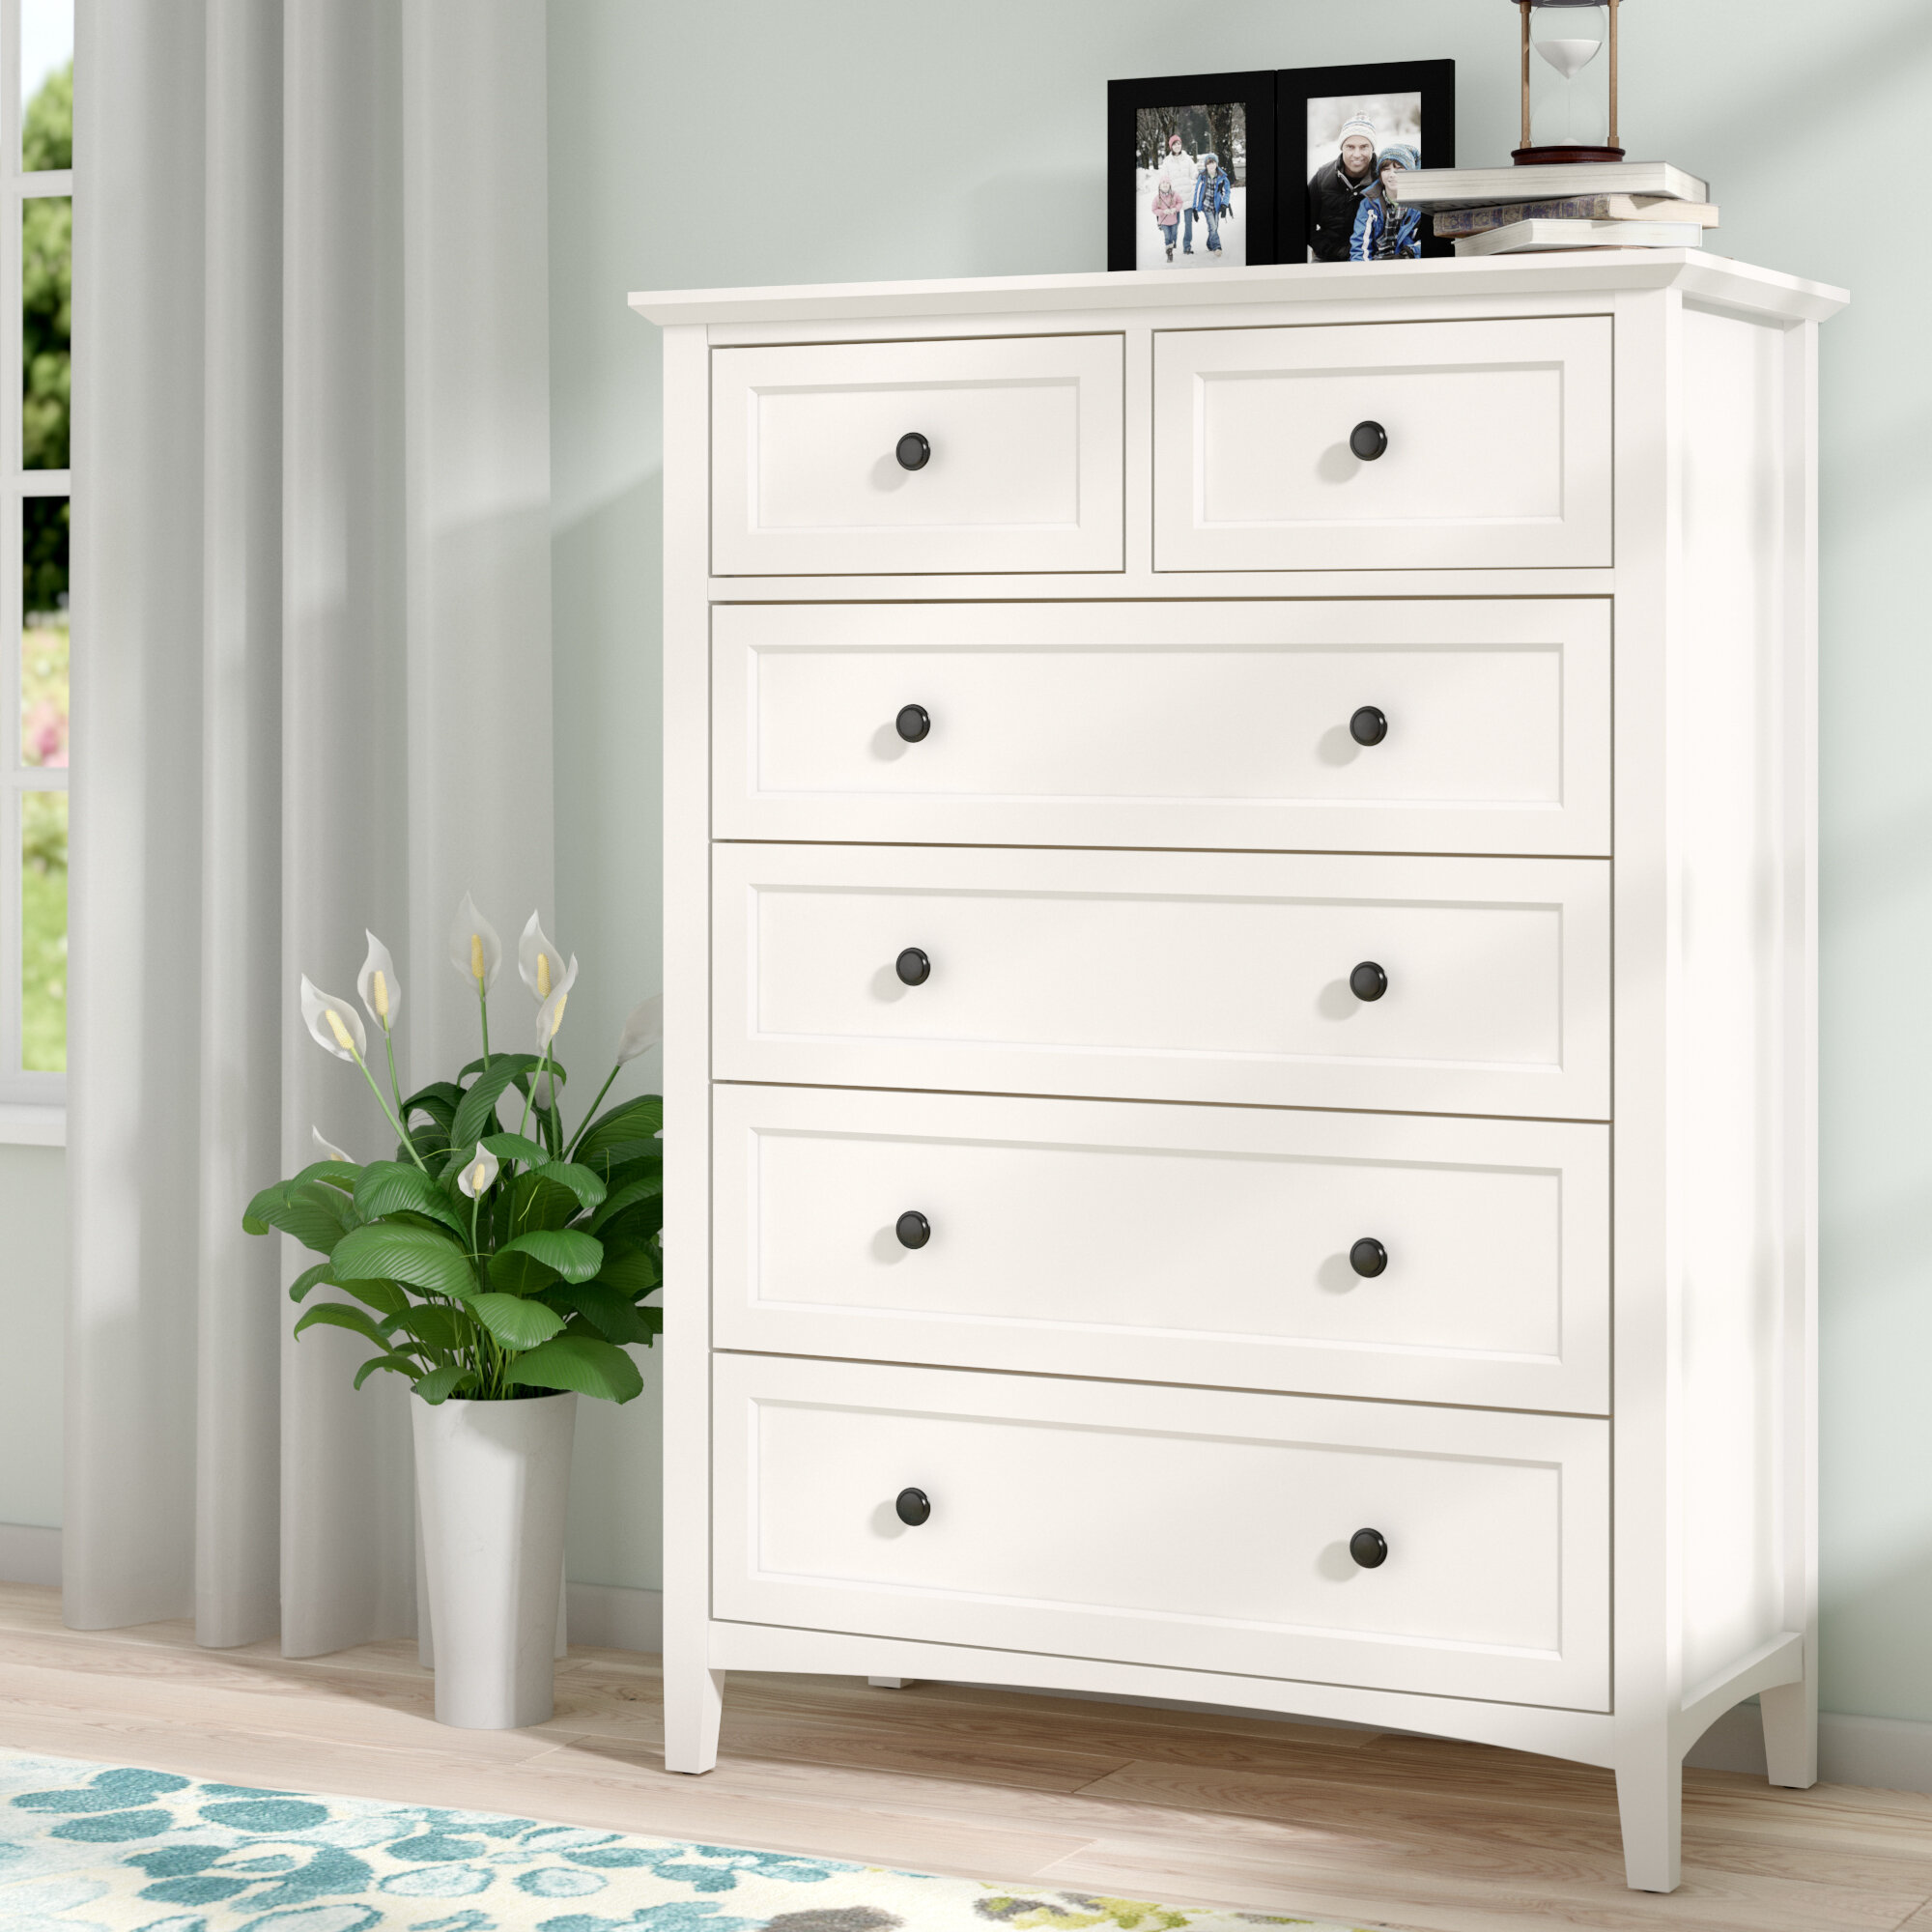 aaea multiple soho modern chest finishes south drawer shore home furniture itm